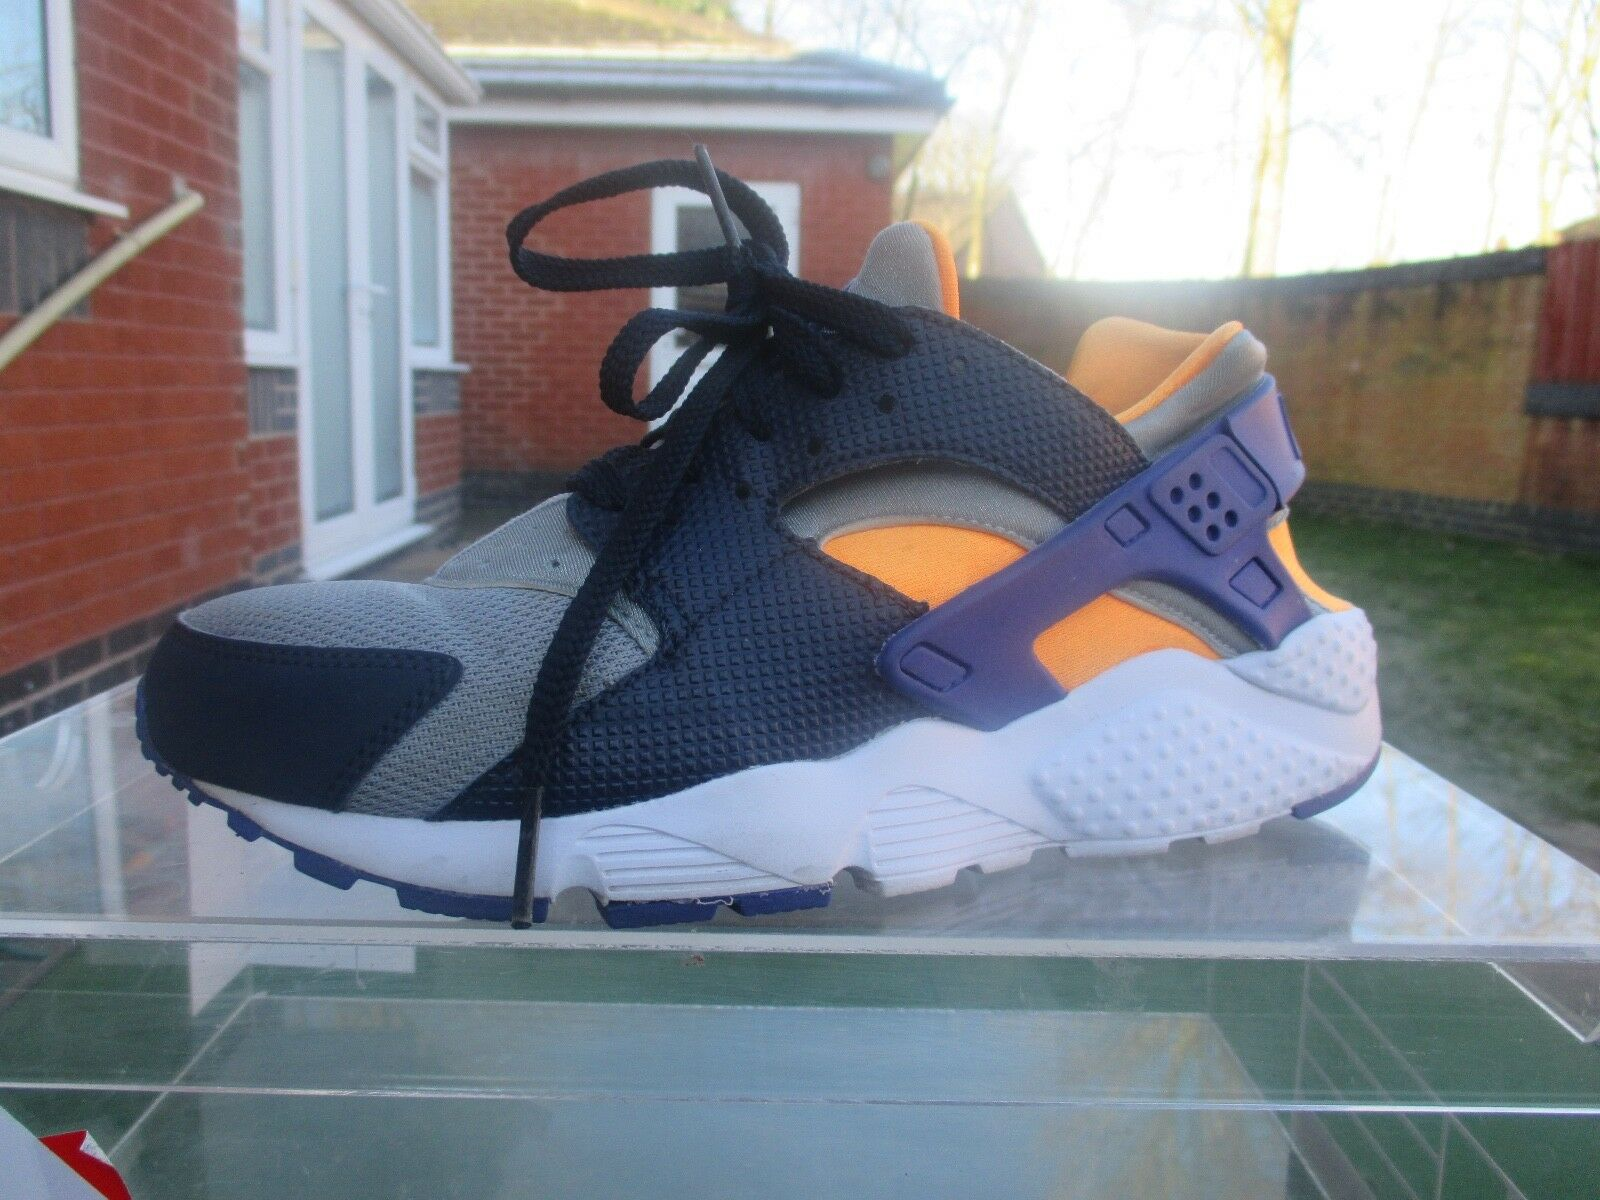 RARE  2015 NIKE AIR HUARACHE WOMEN'S TRAINERS SIZE UK 5.5